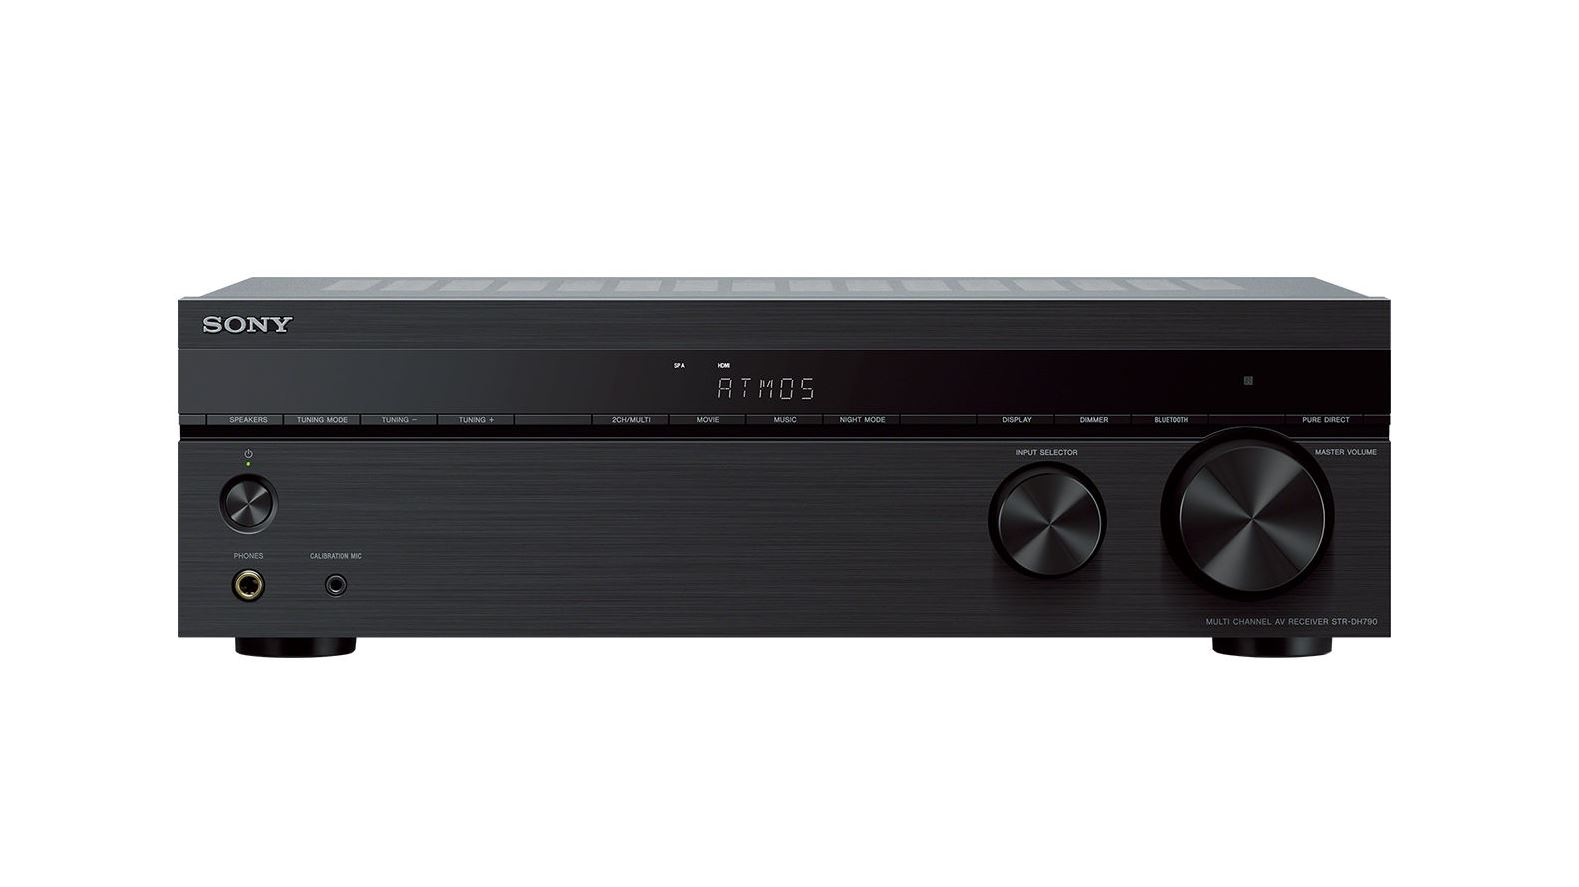 Sony STR-DH790 AV Receiver Review